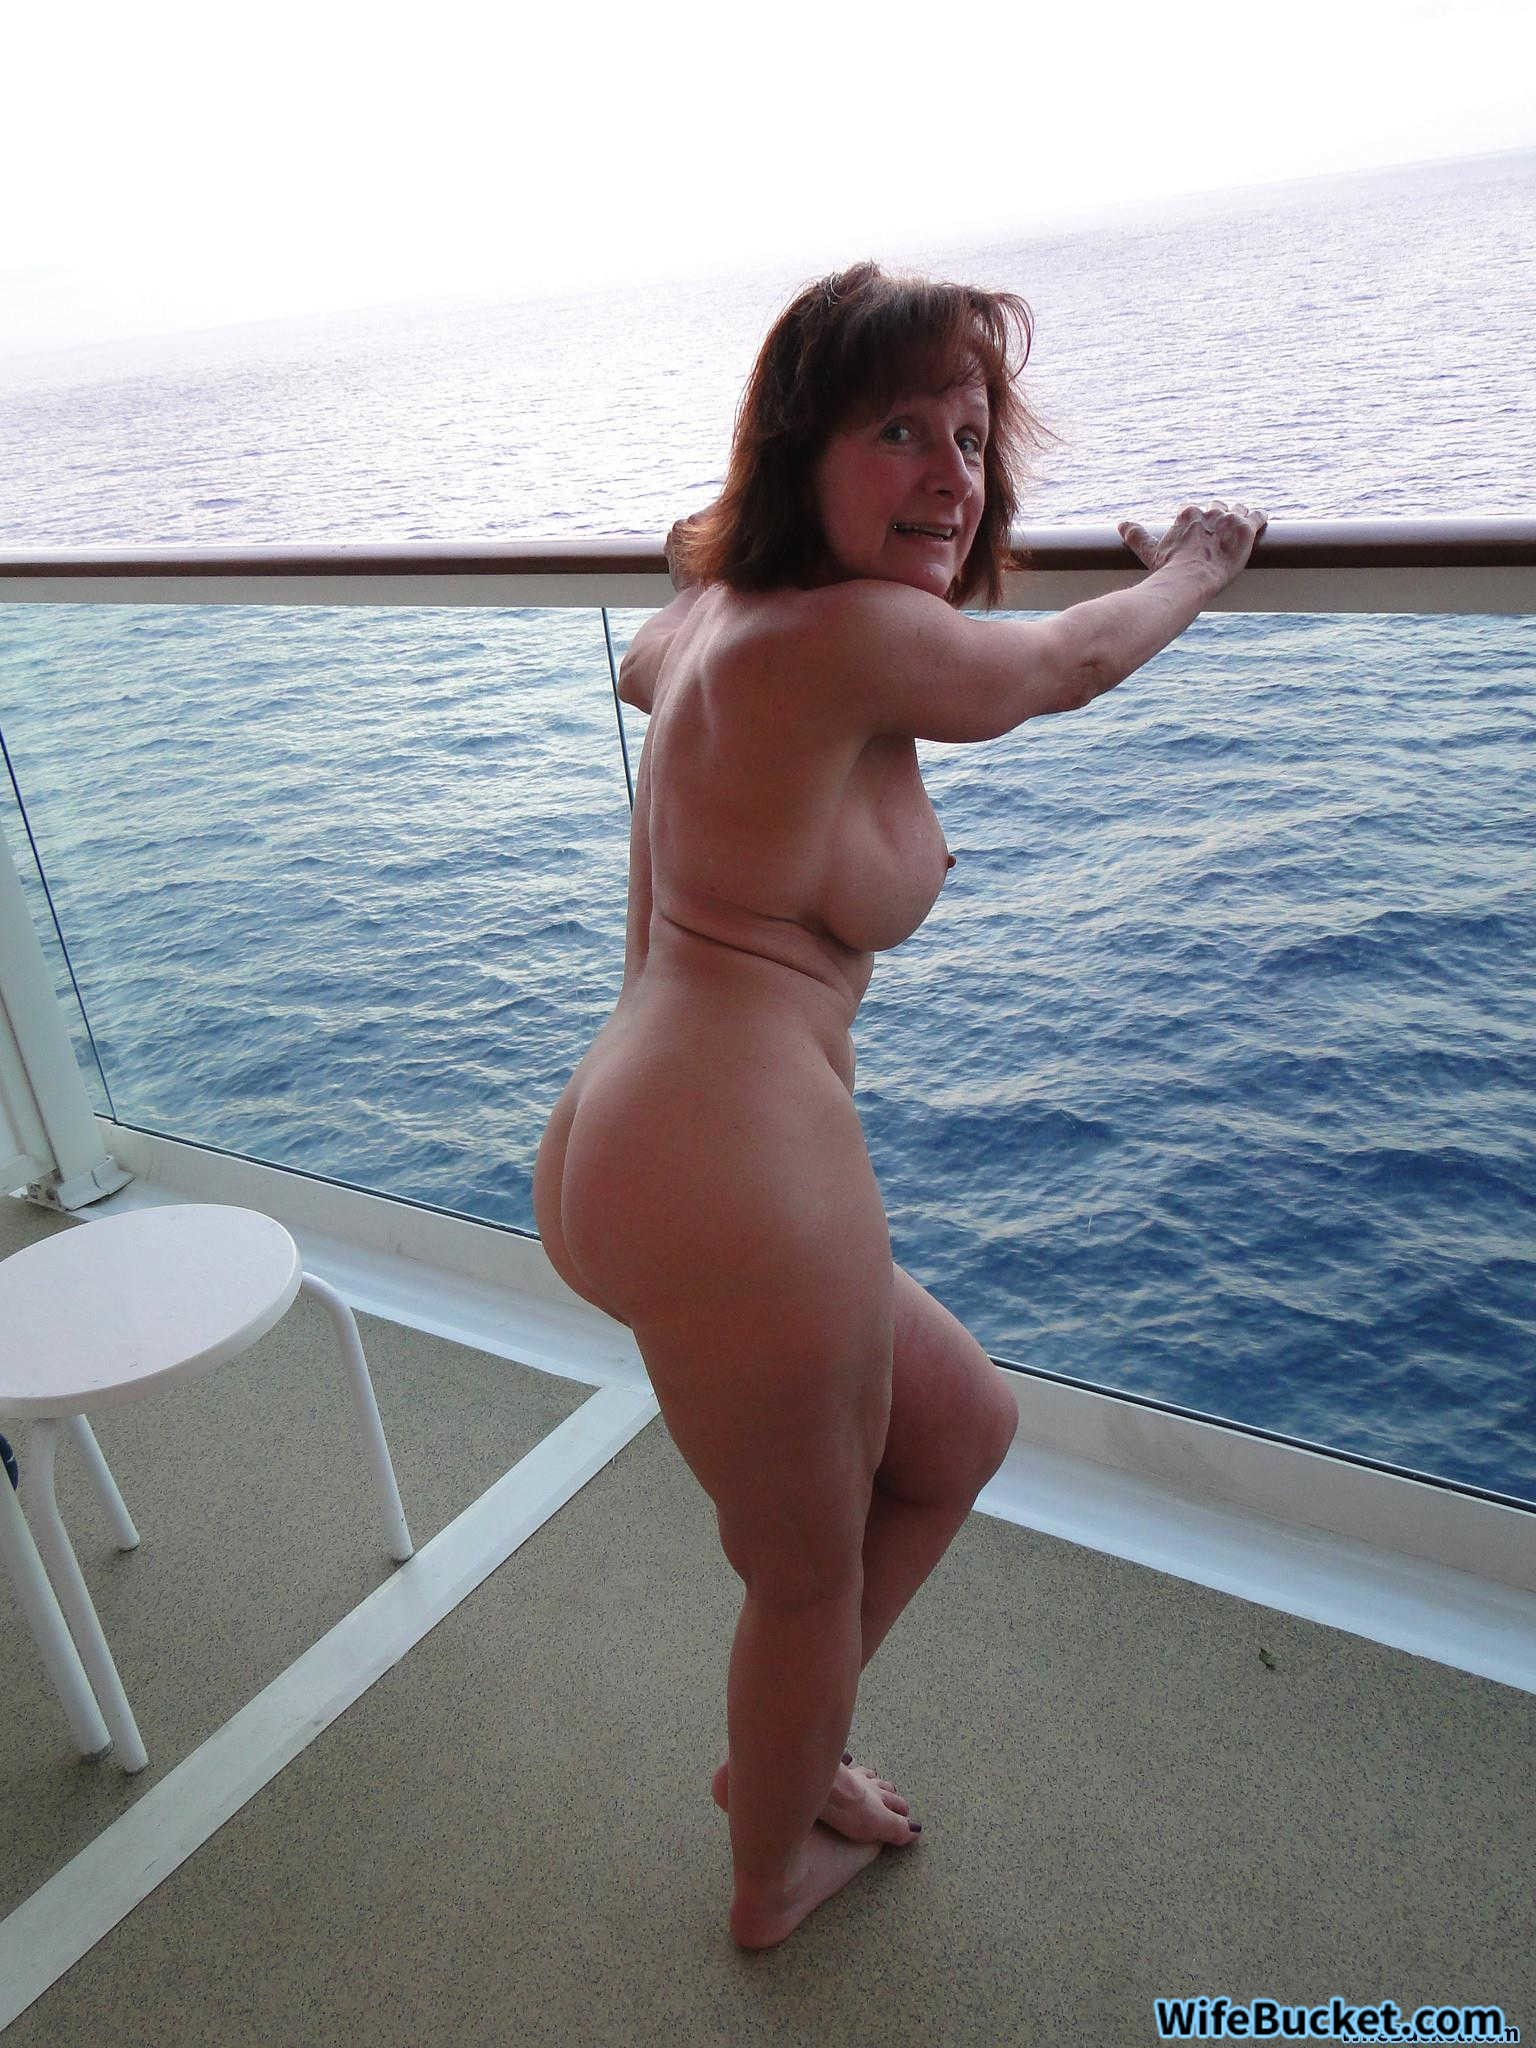 Amateur wives naked pictures